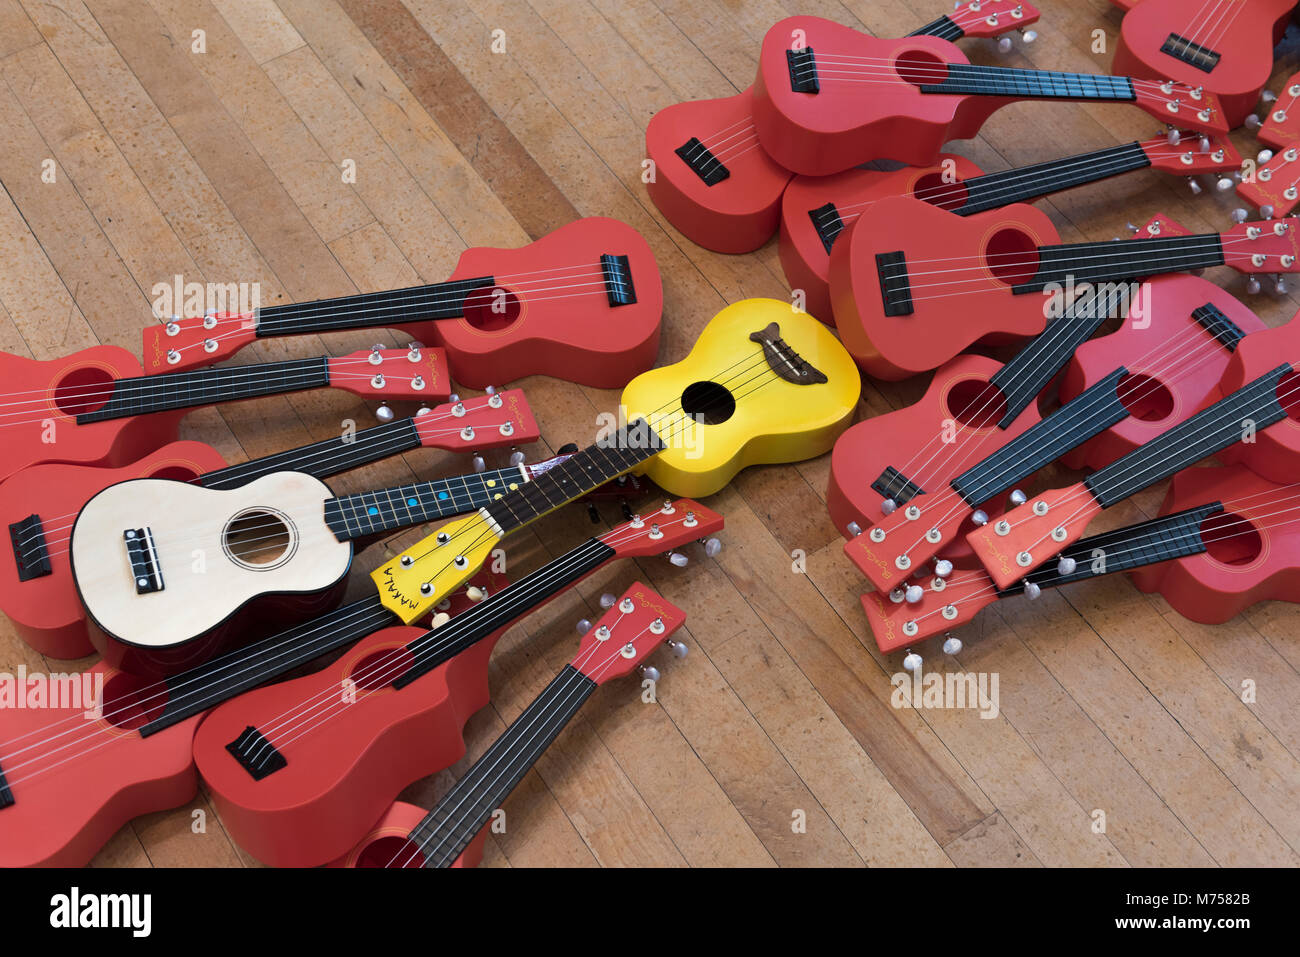 Collection of entry level ukuleles and small guitars lying on the floor before a junior music lesson with children - Stock Image